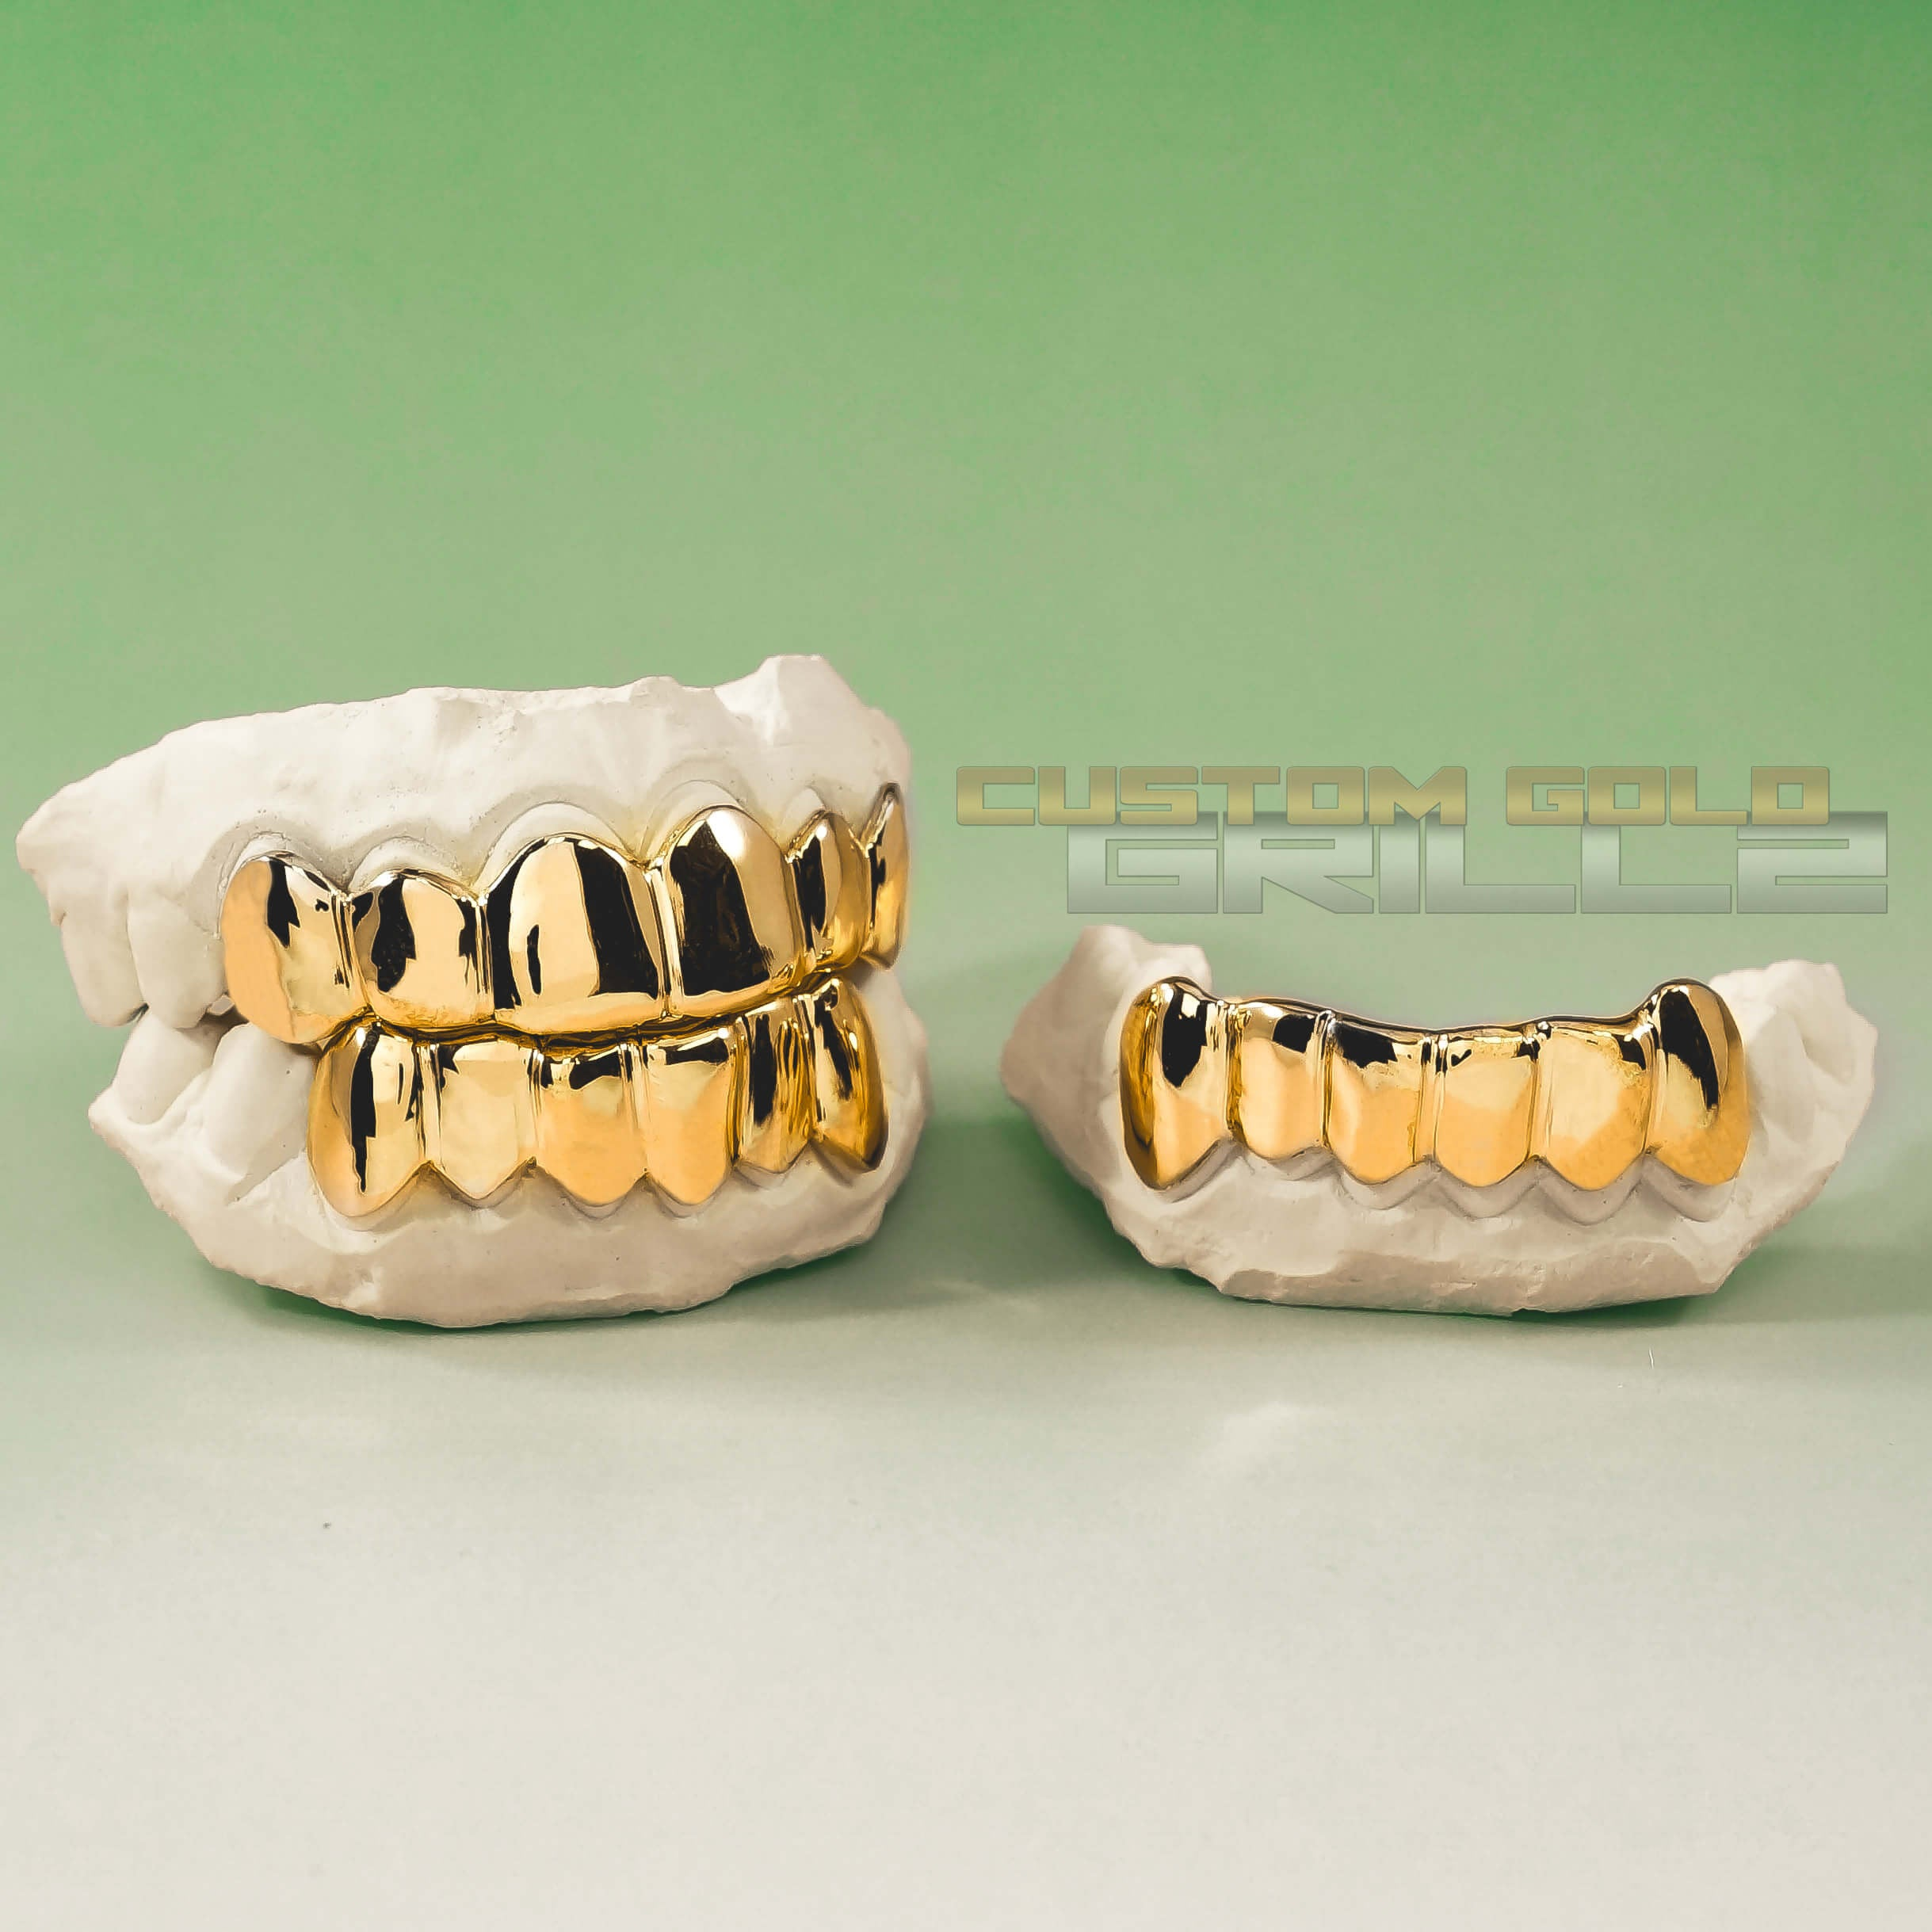 Gold Custom Grillz Set